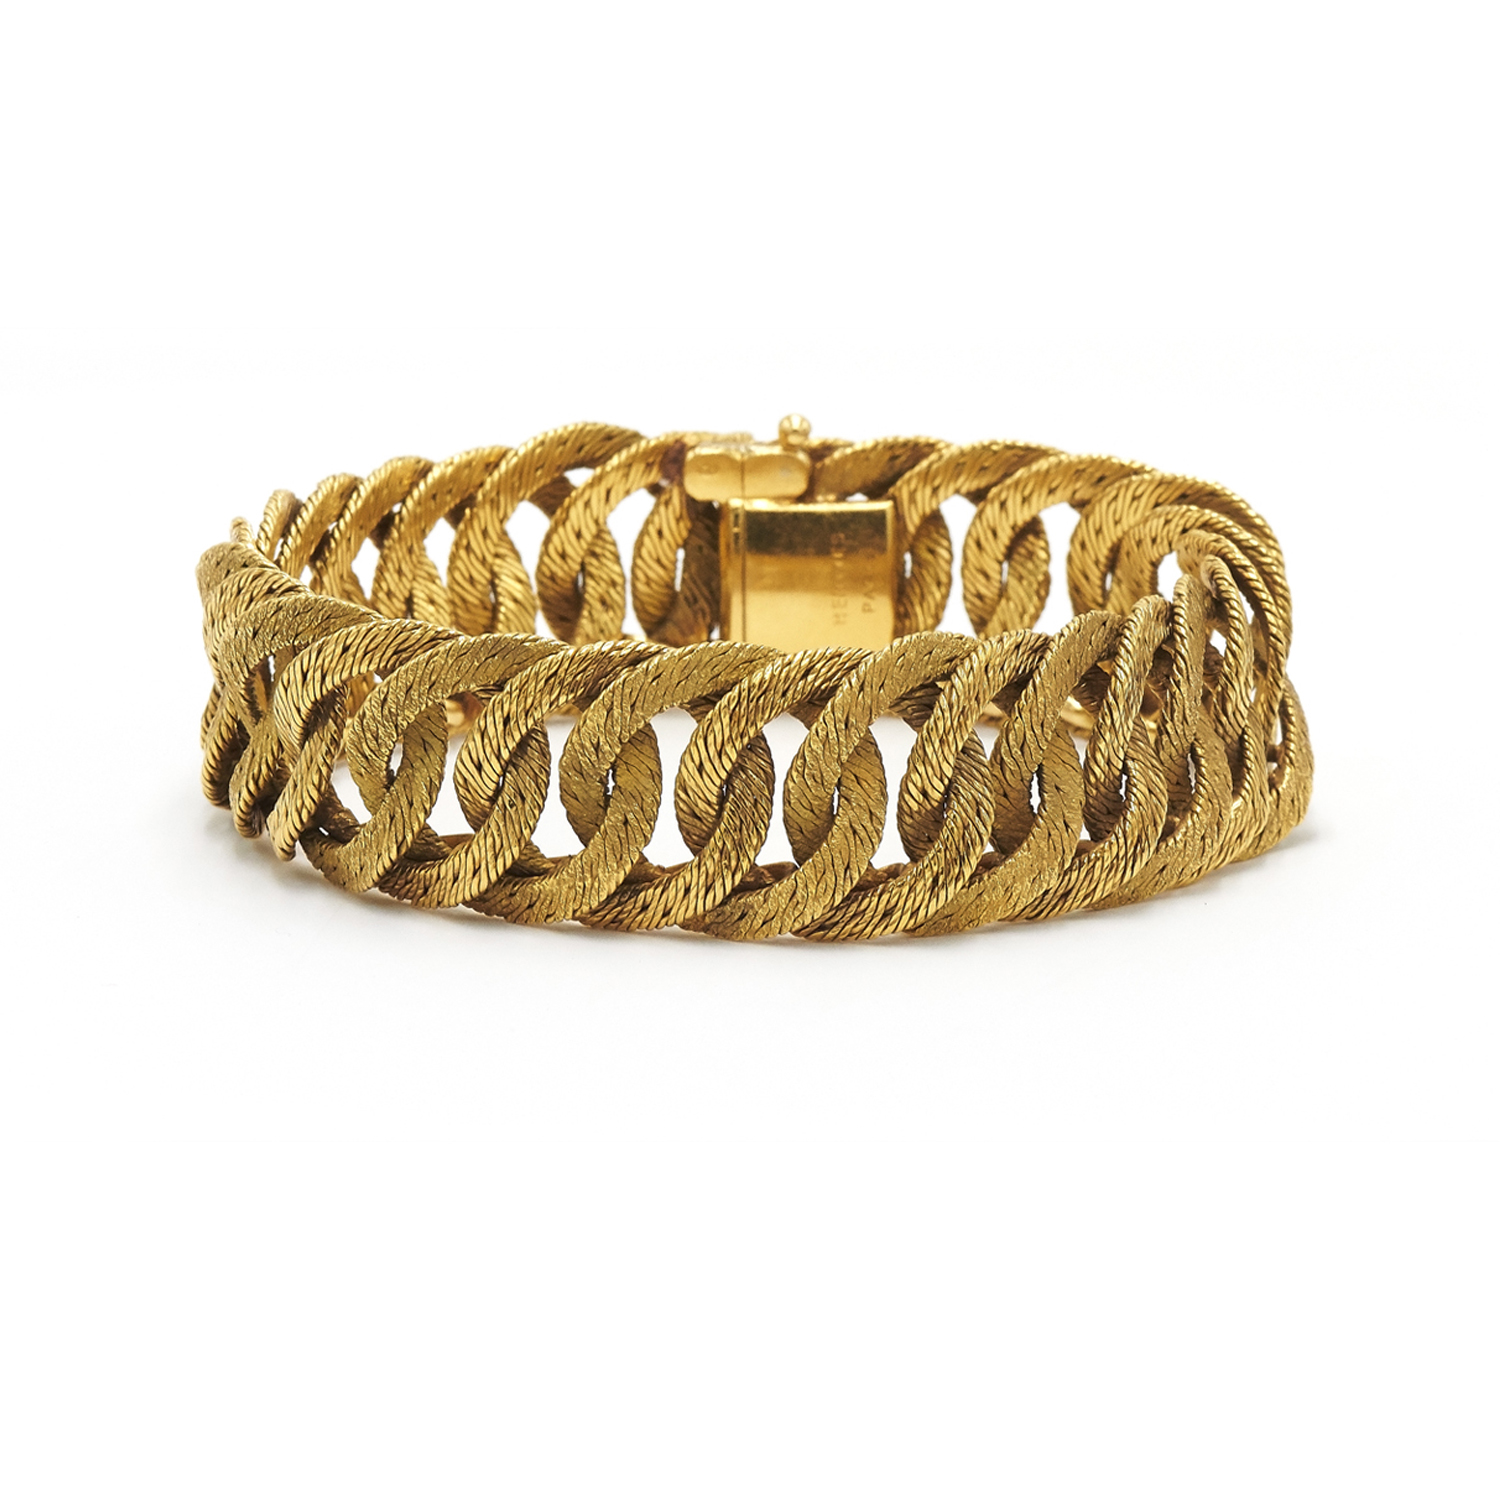 18K Yellow Gold Textured Curb Link Bracelet by Georges L'Enfant for Hermès Style B-41569-FL-0-0